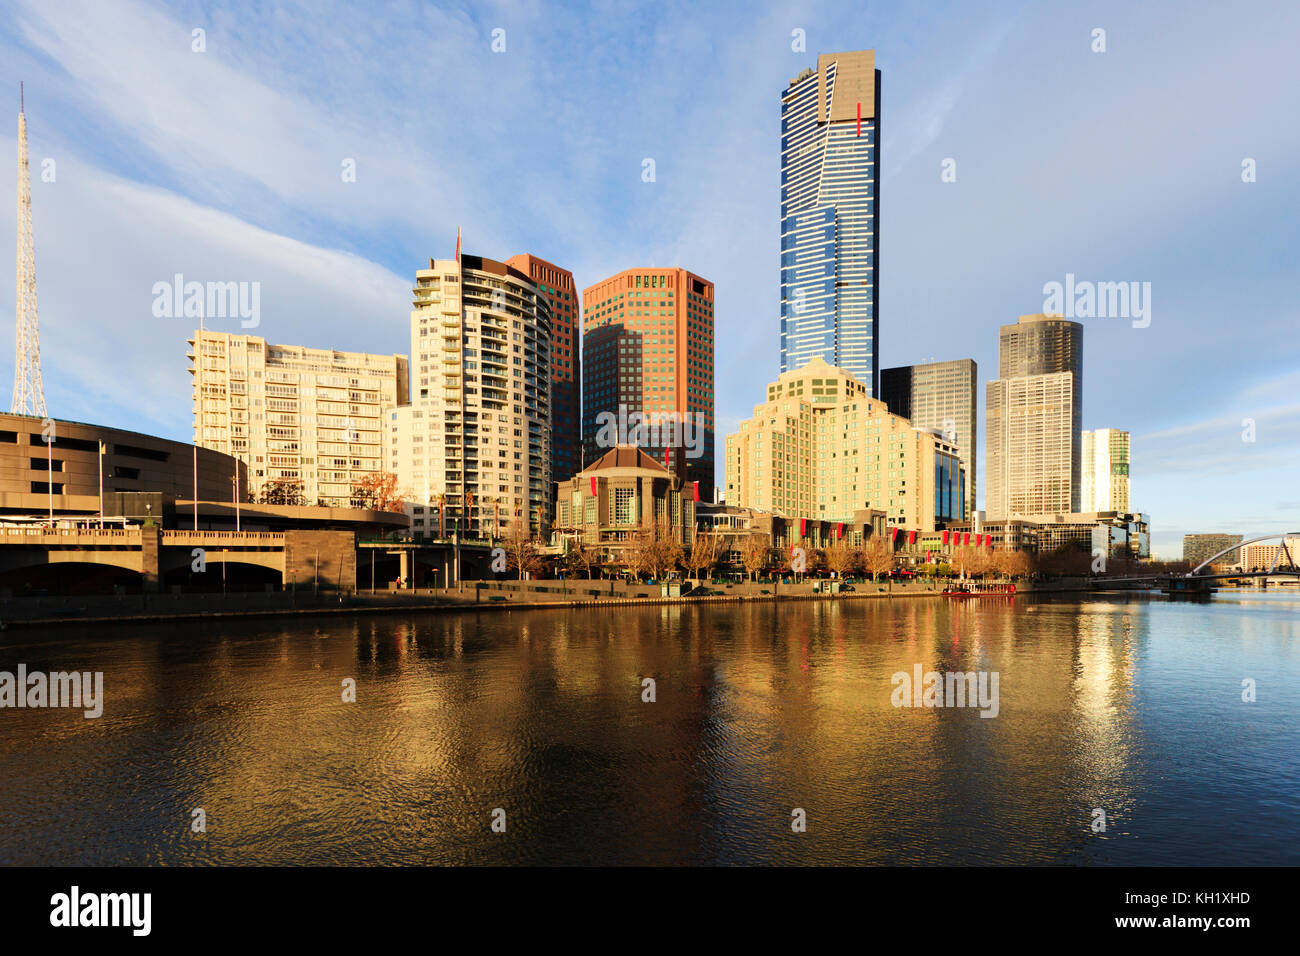 Melbourne, Australia, the skyline with beautiful early morning light. - Stock Image